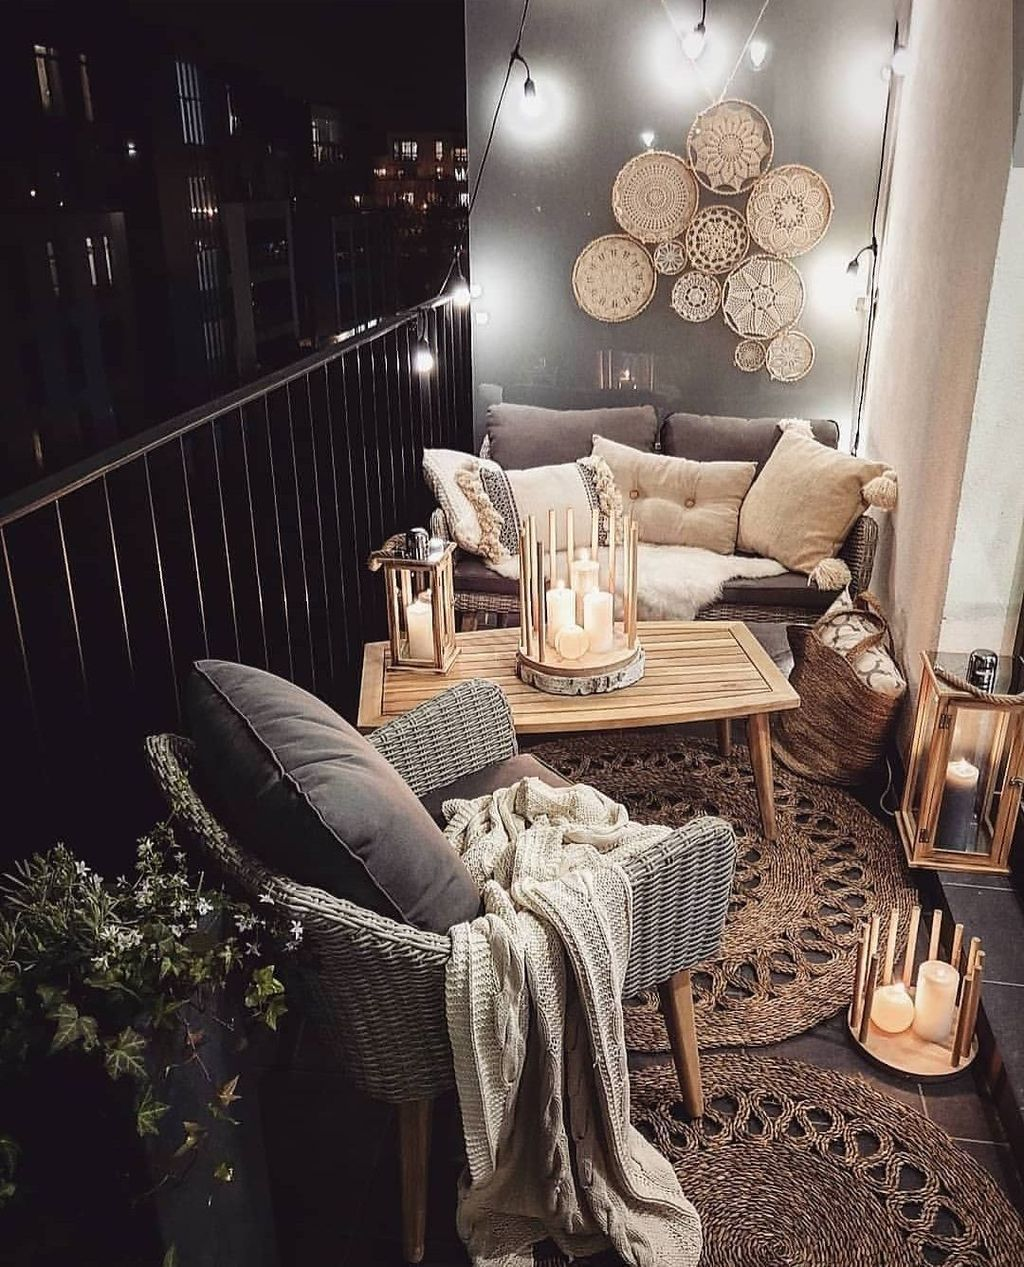 80 Small Apartment Balcony Decorating Ideasapartment ideas ideas for party trends 2020